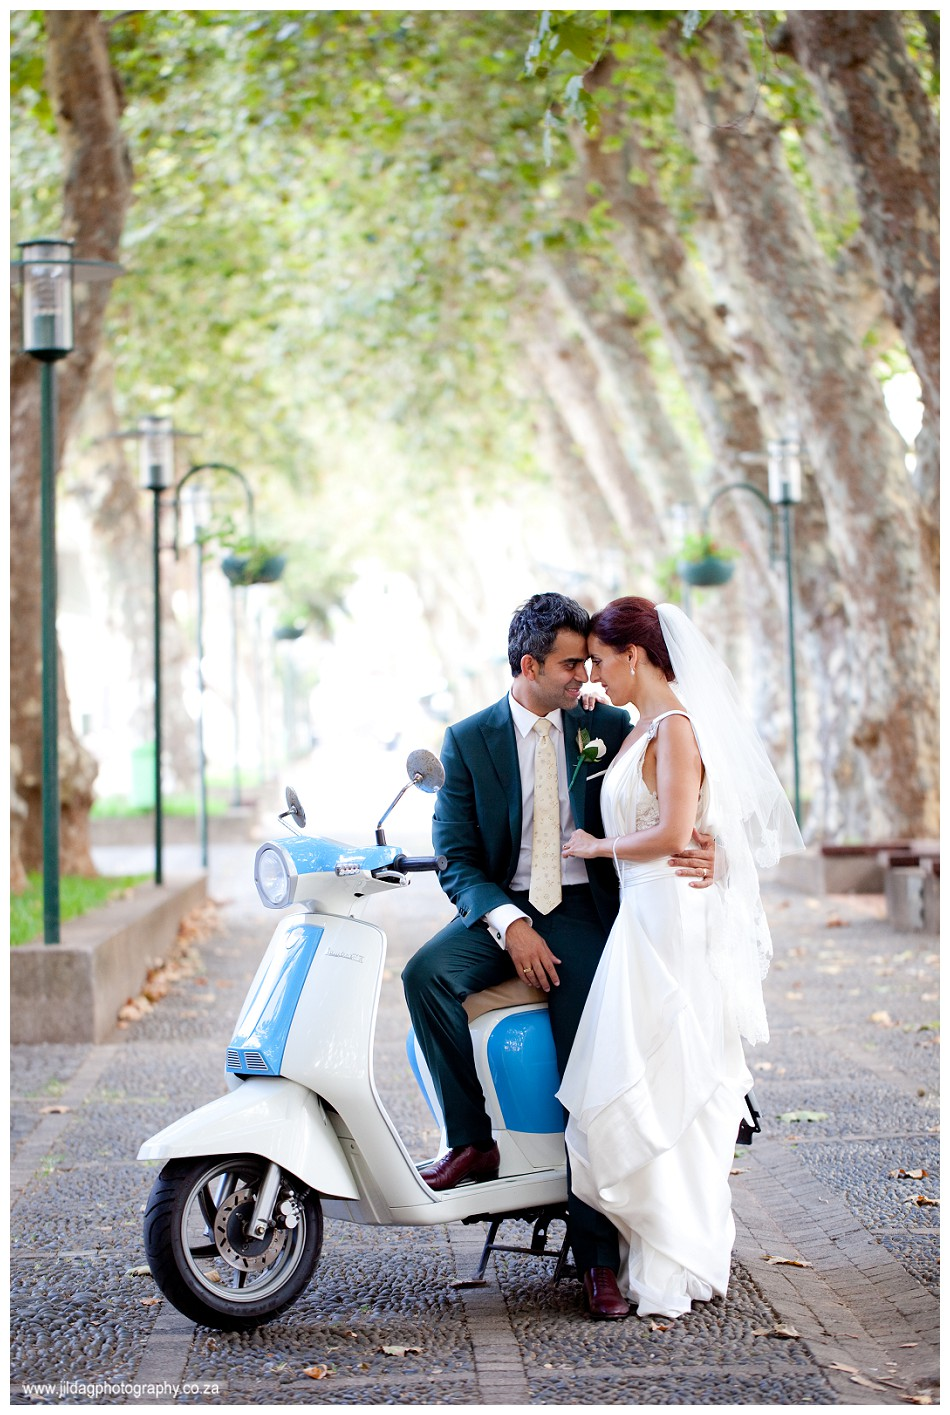 Destination wedding, Madeira, Portugal wedding, Jilda G Photography (86)